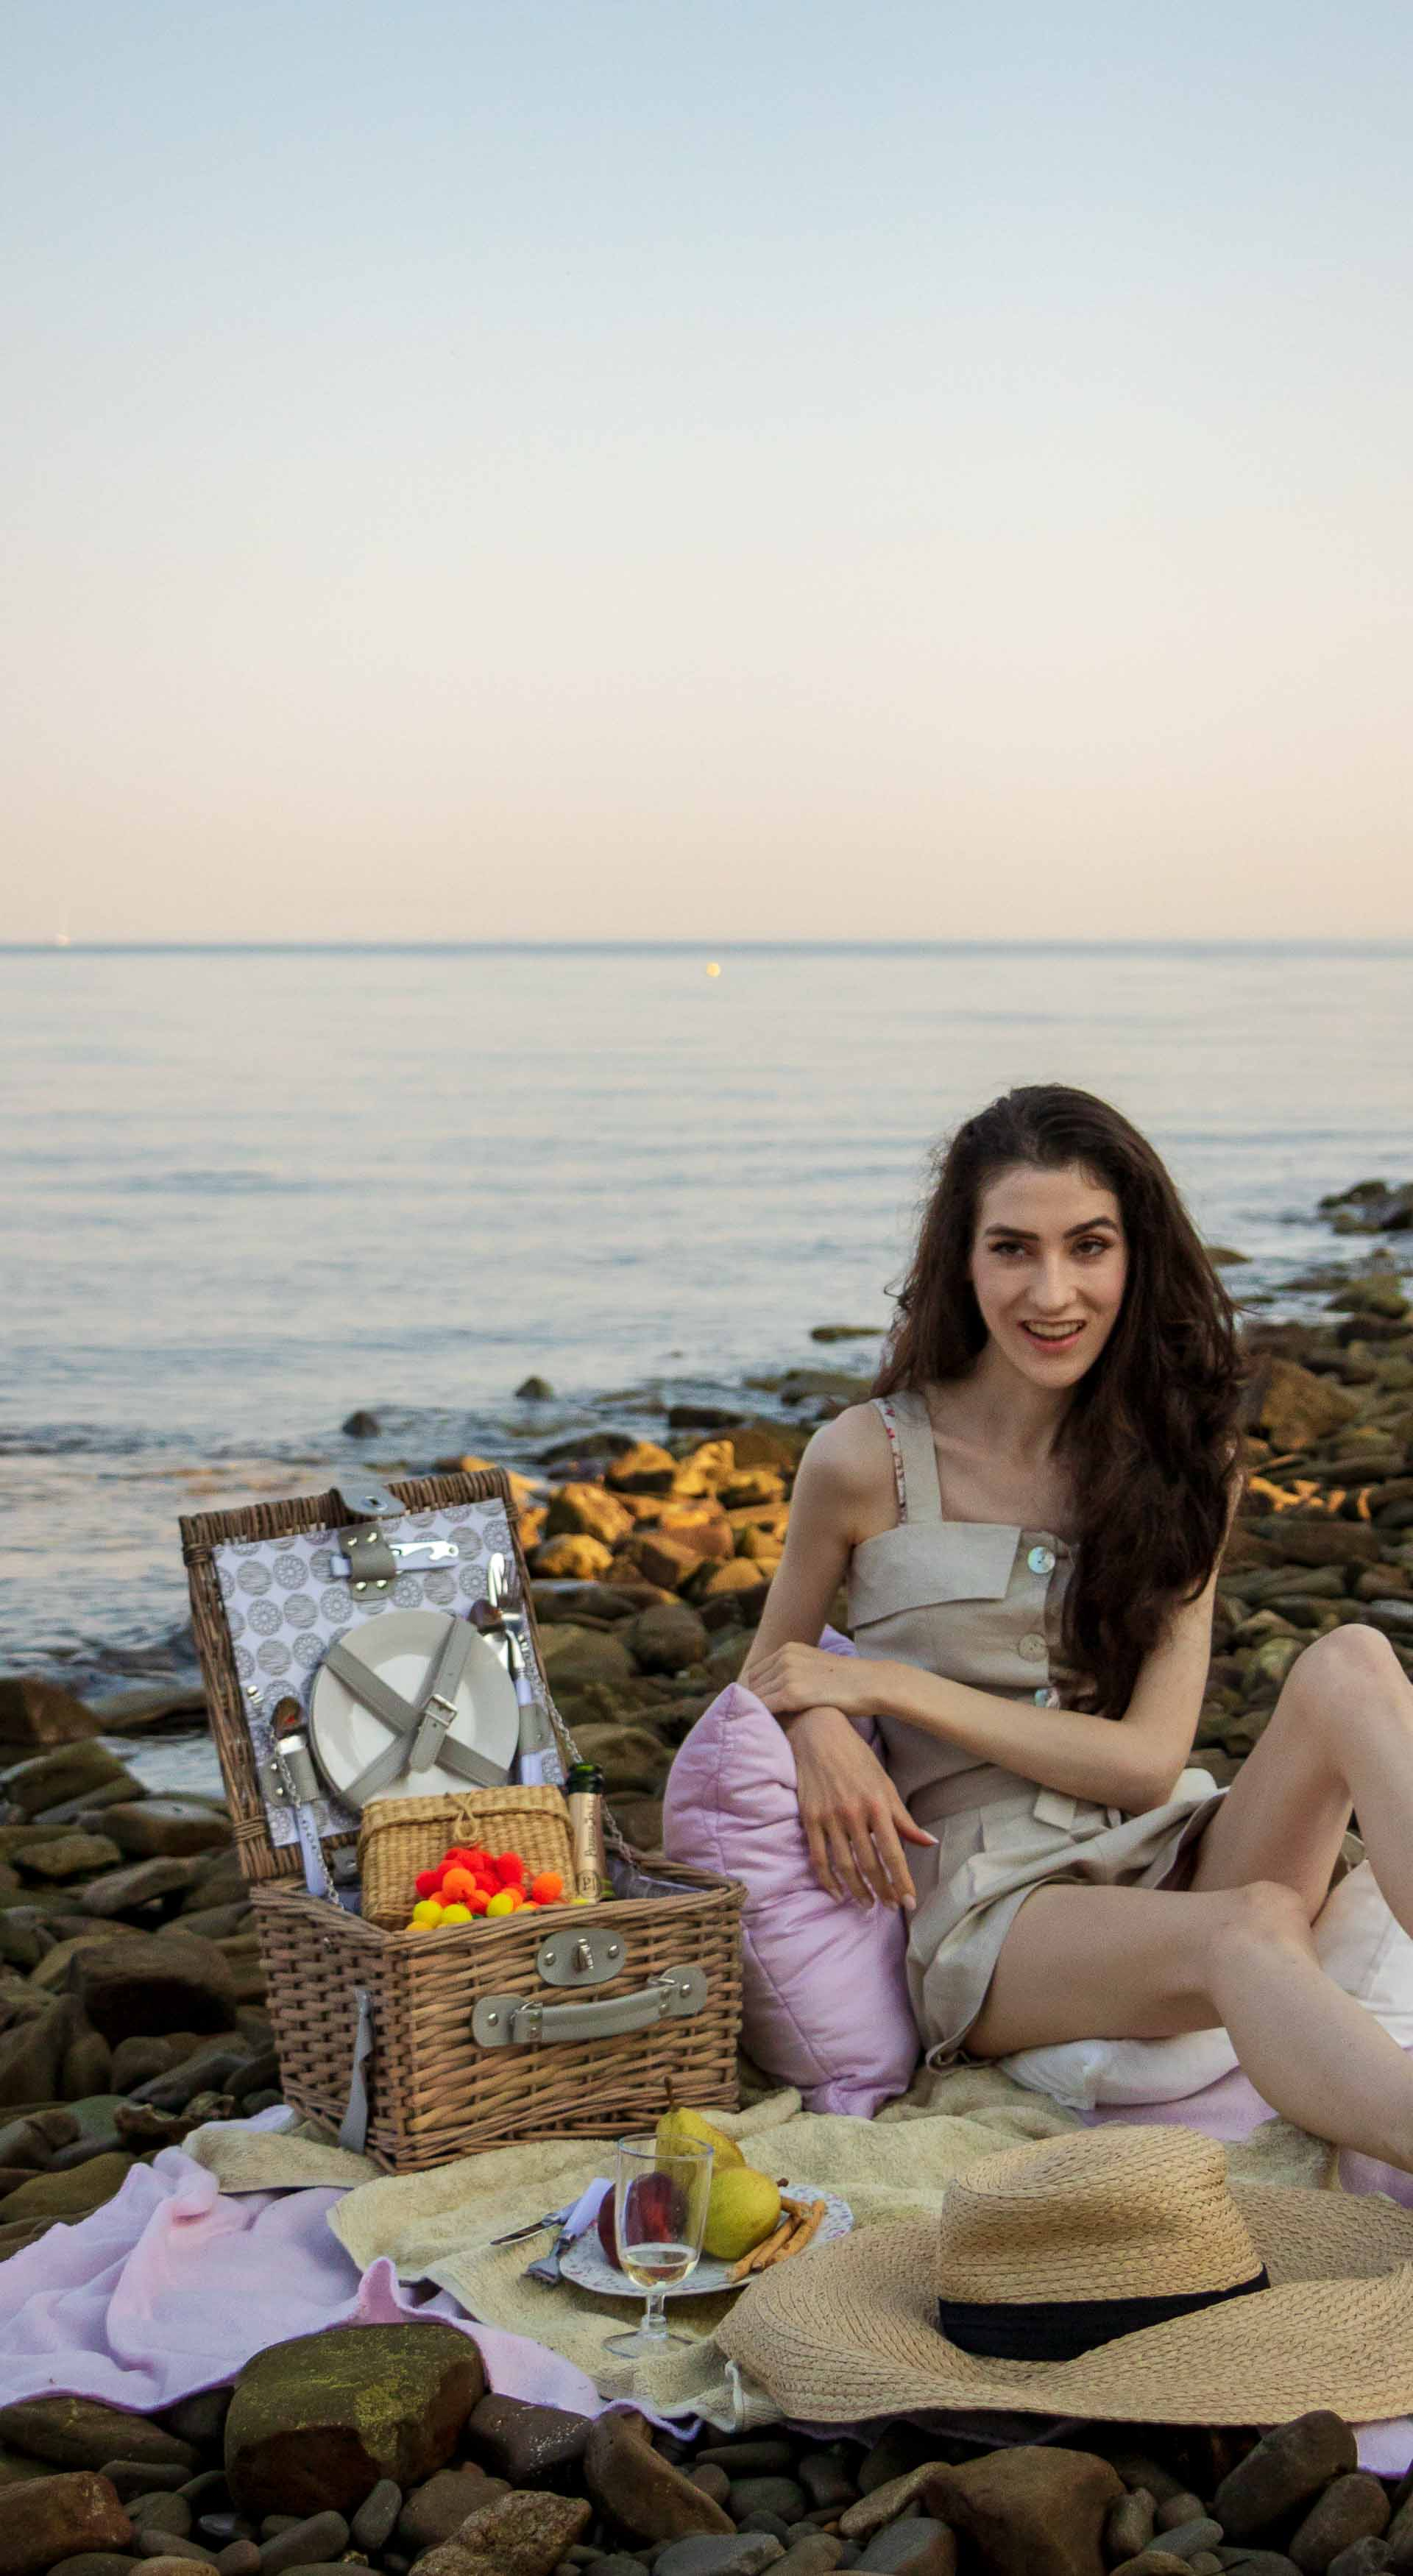 Slovenian Fashion Blogger Veronika Lipar of Brunette from Wall wearing beige linen crop top, paper bag linen shorts, luxe pool slides, large straw hat, Nannacay basket bag while sitting on a picnic blanket, having picnic on the beach